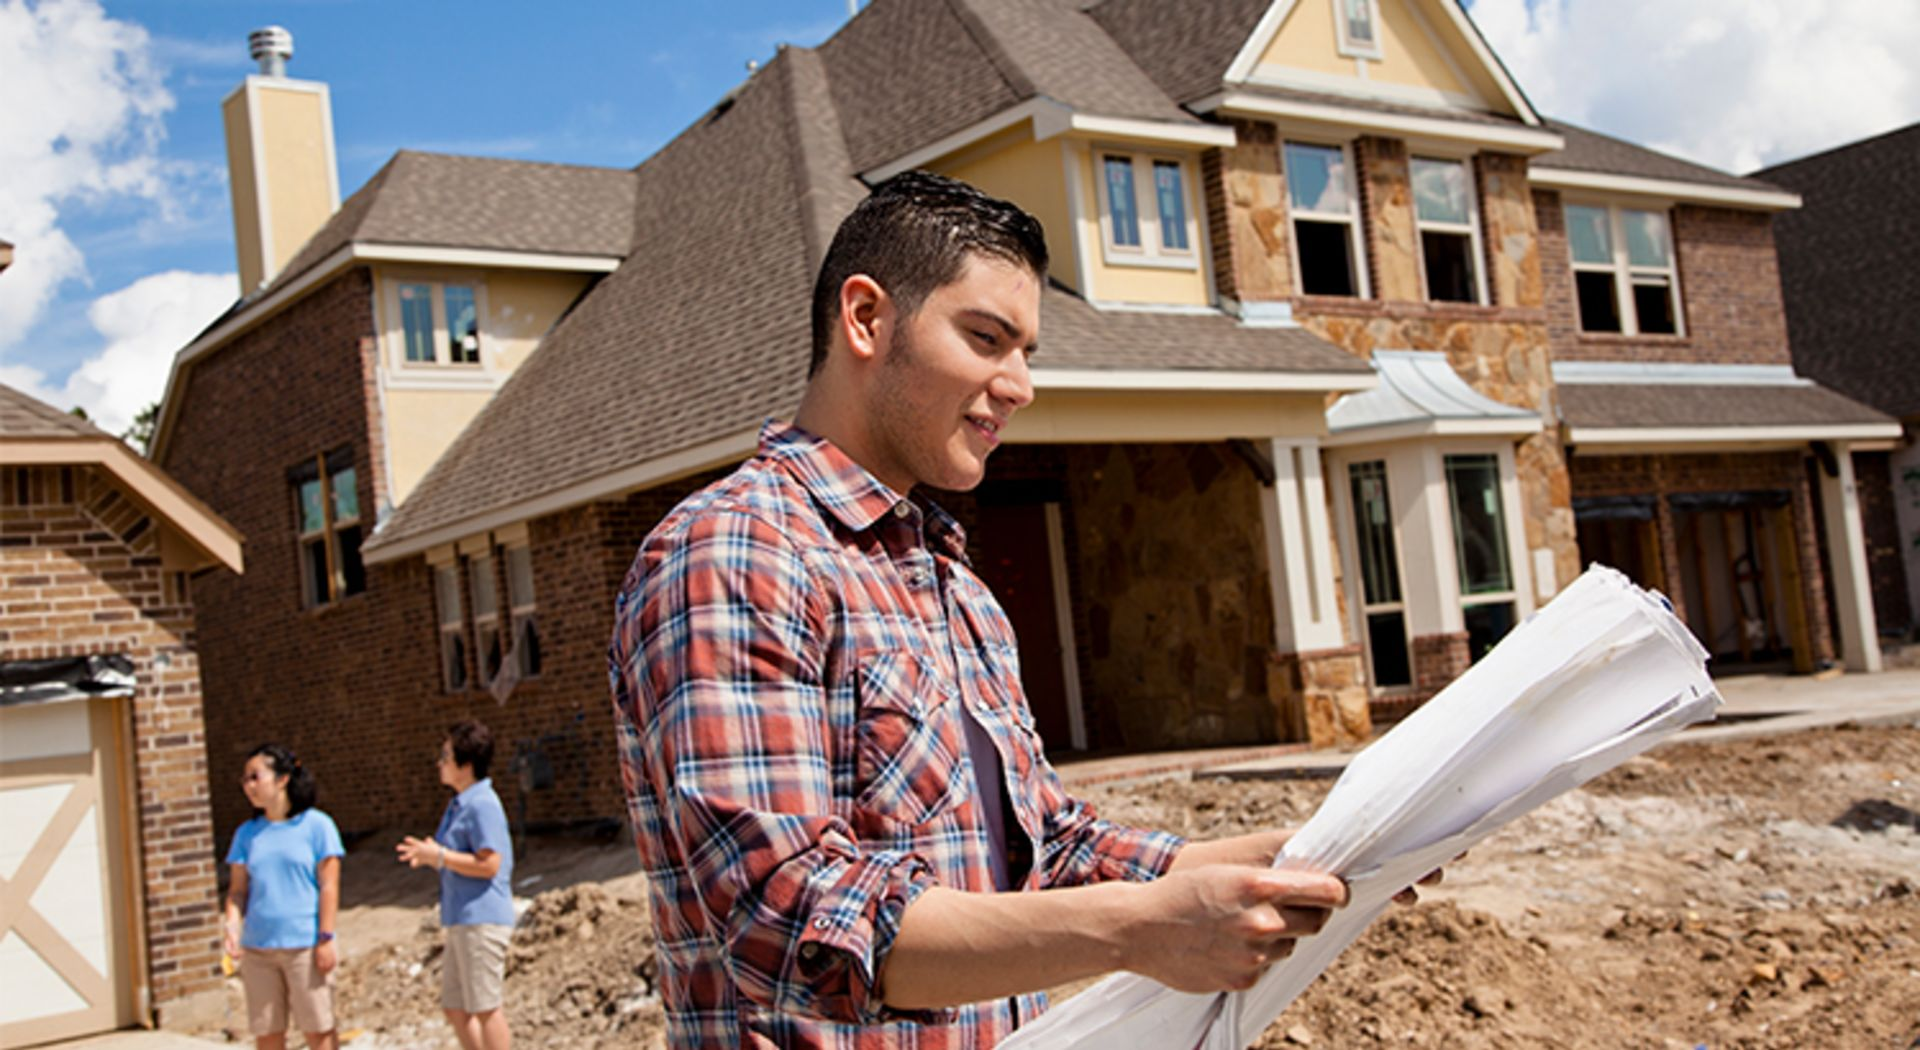 Cooped Up, Unhappy: Young Professionals Target New Homes